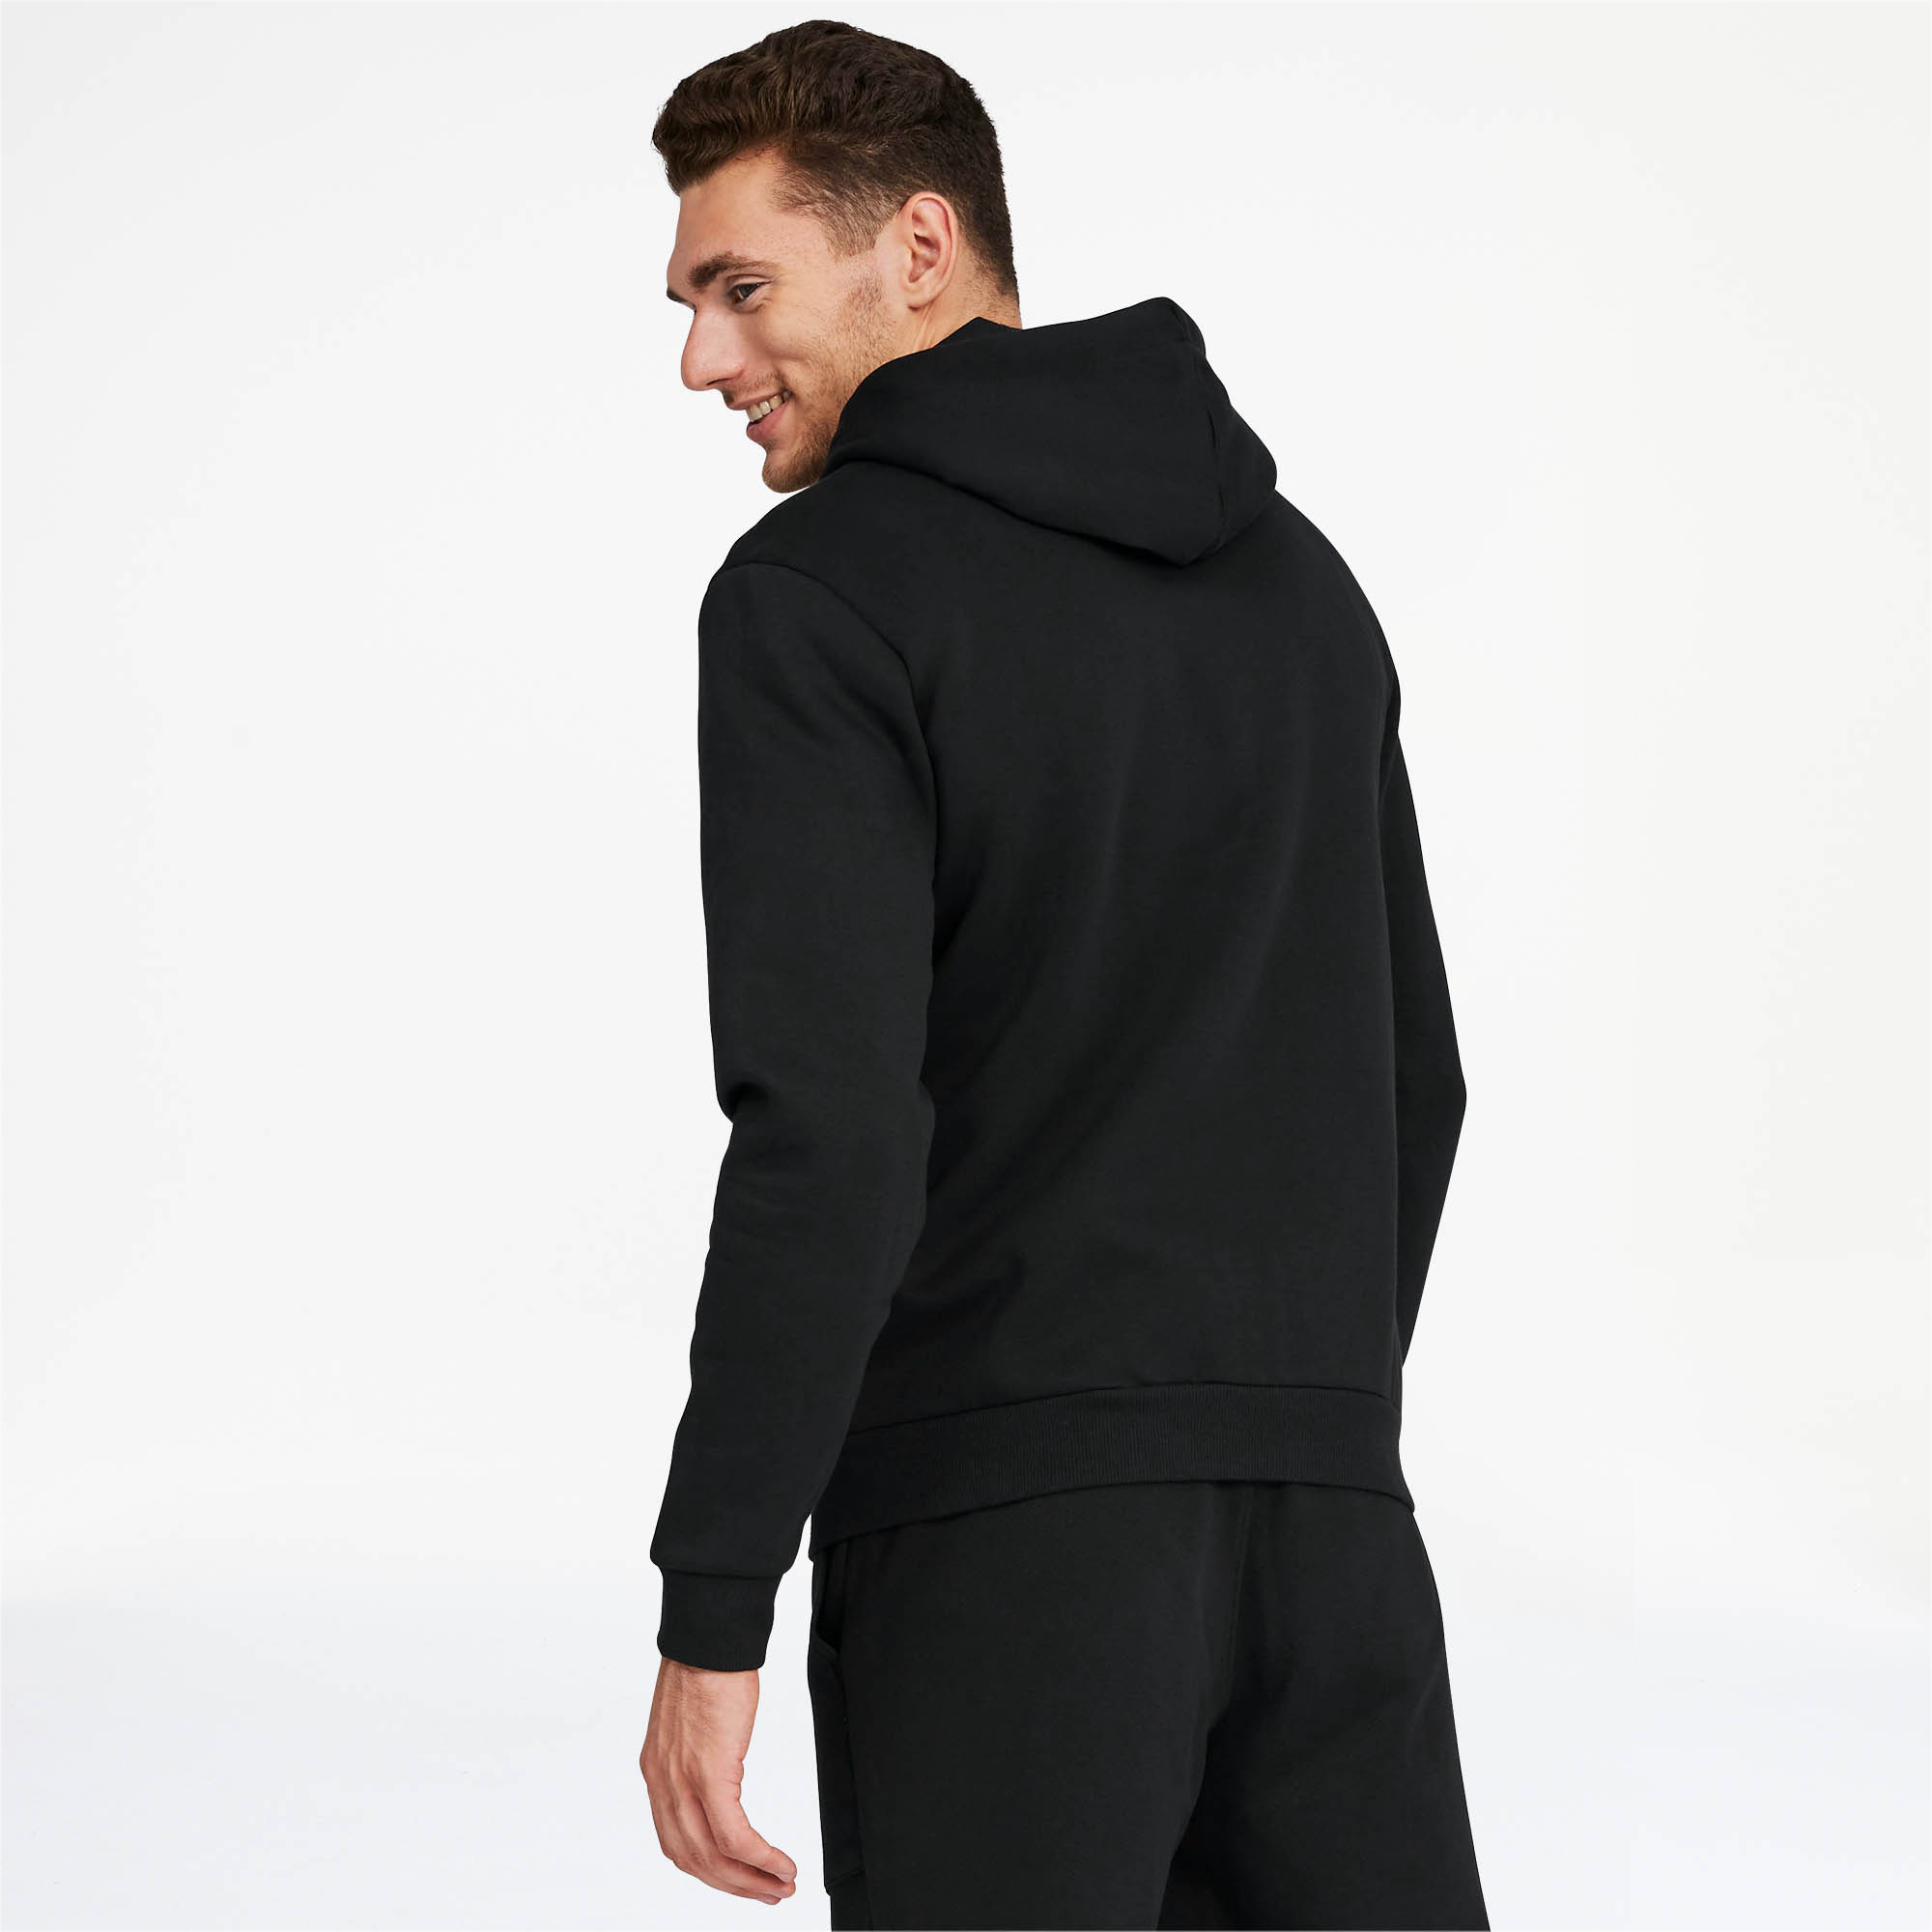 PUMA-Essentials-Men-039-s-Hooded-Fleece-Logo-Jacket-Men-Sweat-Basics thumbnail 5